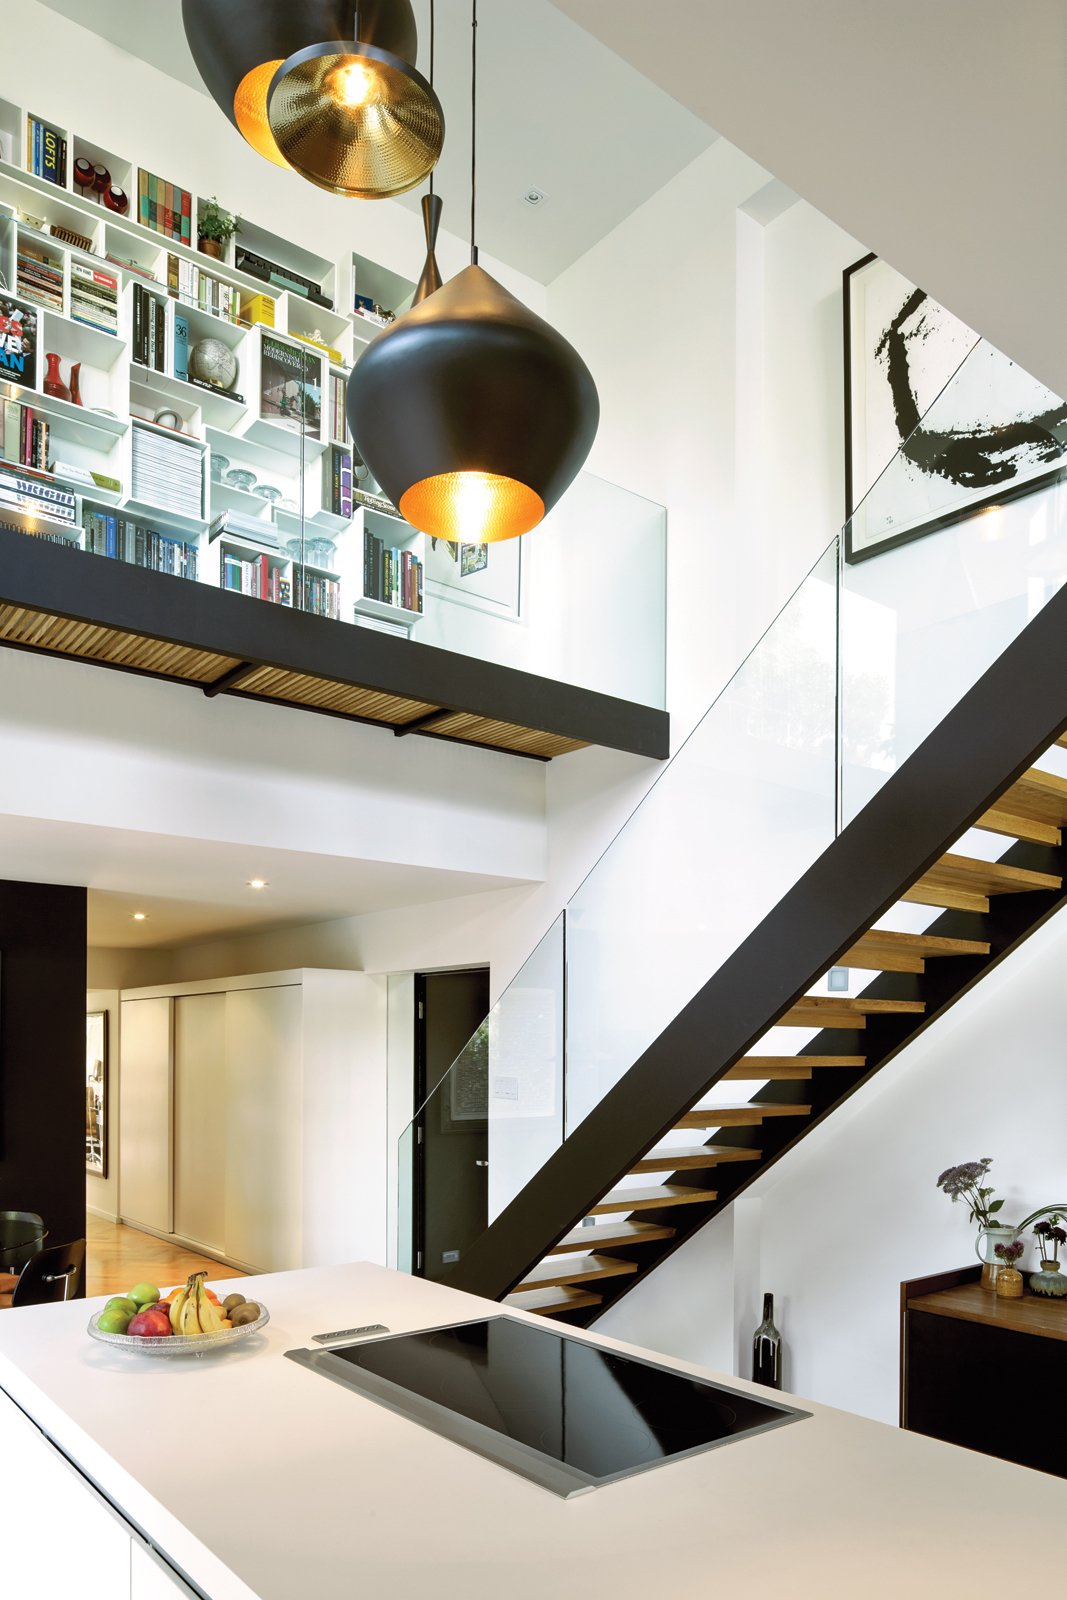 The couple's white Bulthaup kitchen is set within a double-height volume hung with Tom Dixon Beat lights, arranged in a custom configuration by interior designer Maria Rosa Di Ioia. Overhead, Cubit shelving artfully displays books and objects, accessible by a glass-walled footbridge added during the renovation. Tagged: Staircase and Wood Tread.  Renovations by Evander John Torio from A Renovated Flat in Moshe Safdie's Habitat '67